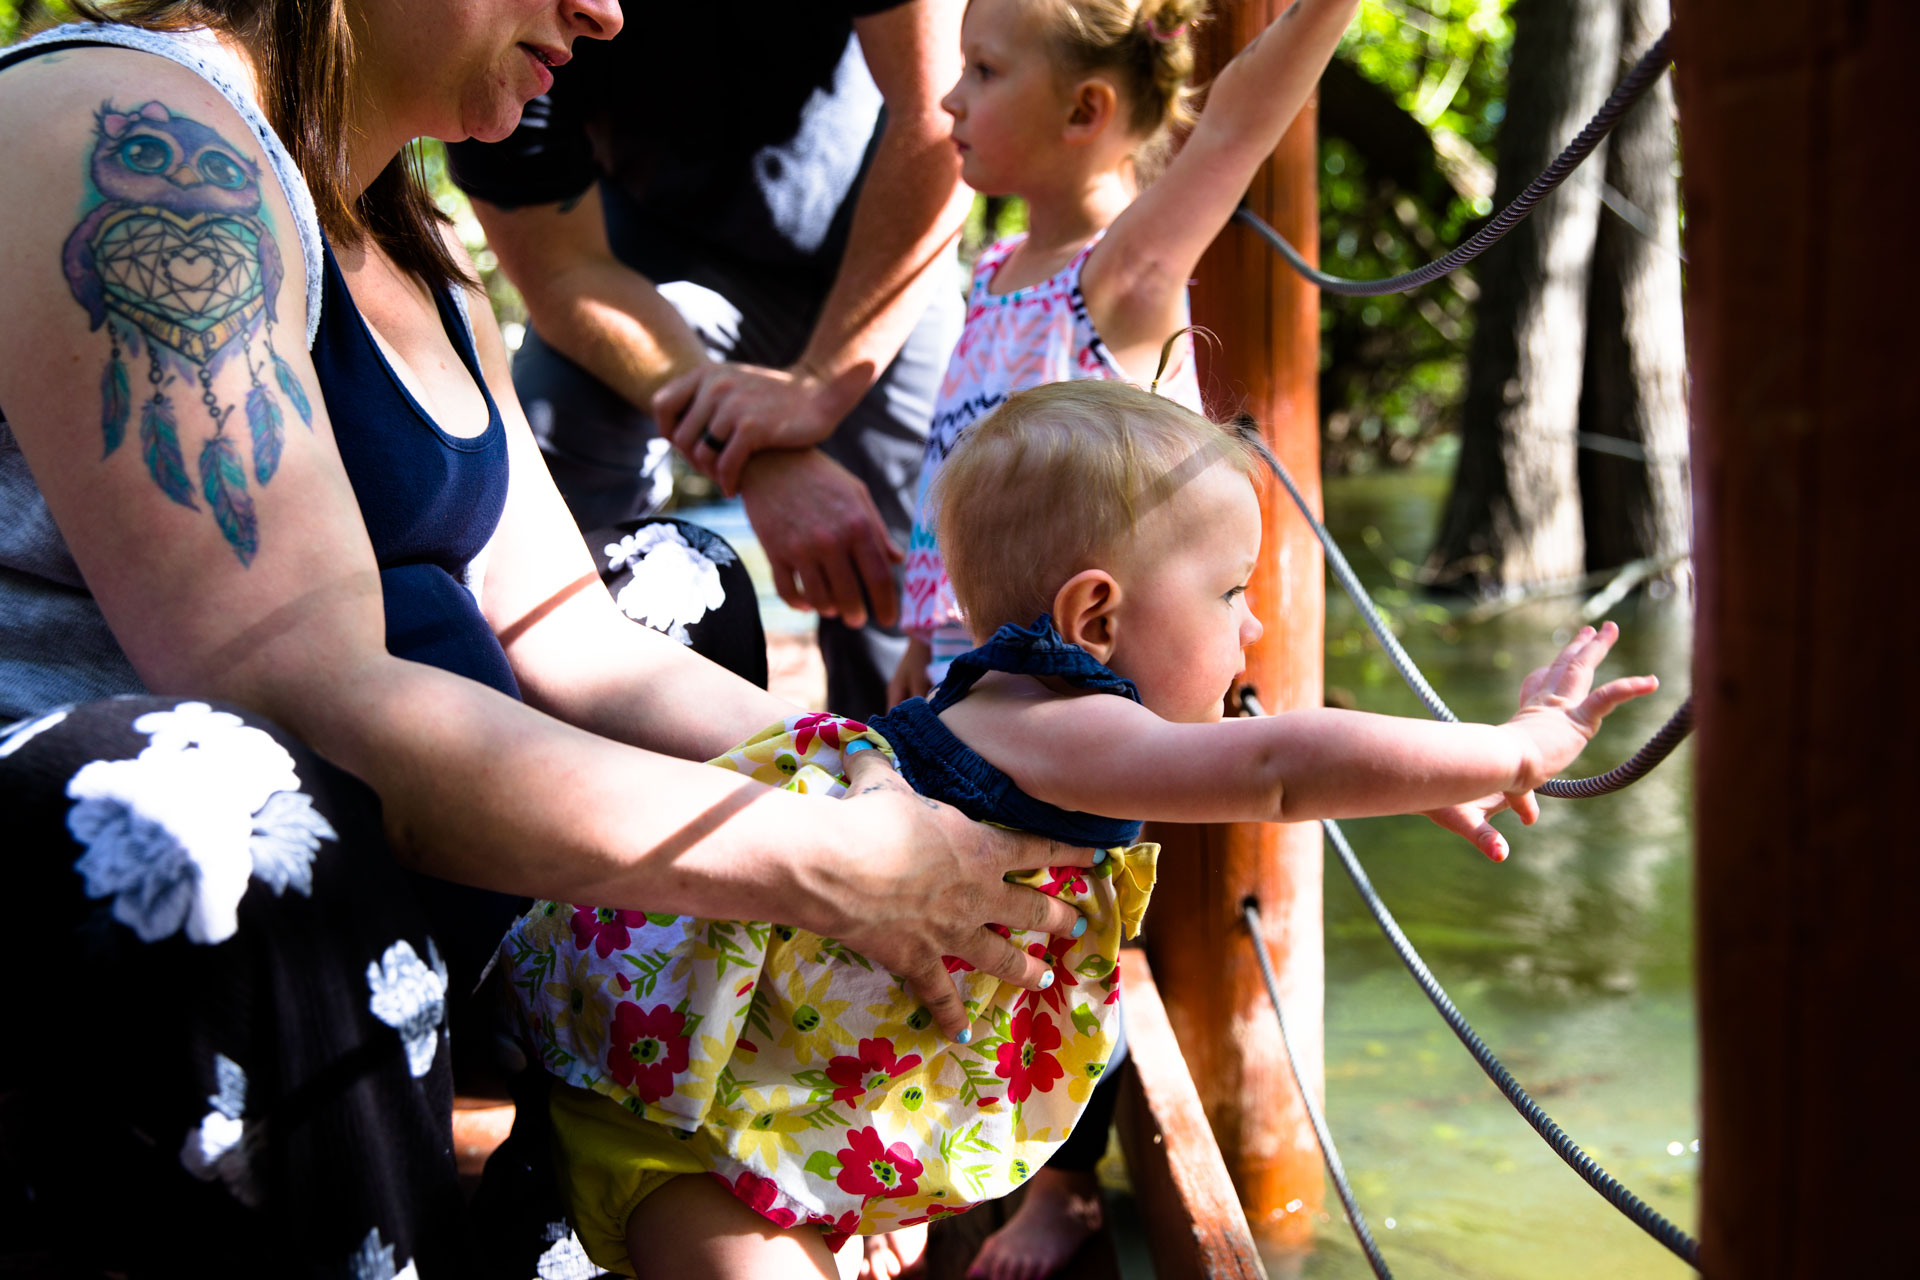 Sisters looking over the railing at the Boise River with parents holding on tight from behind